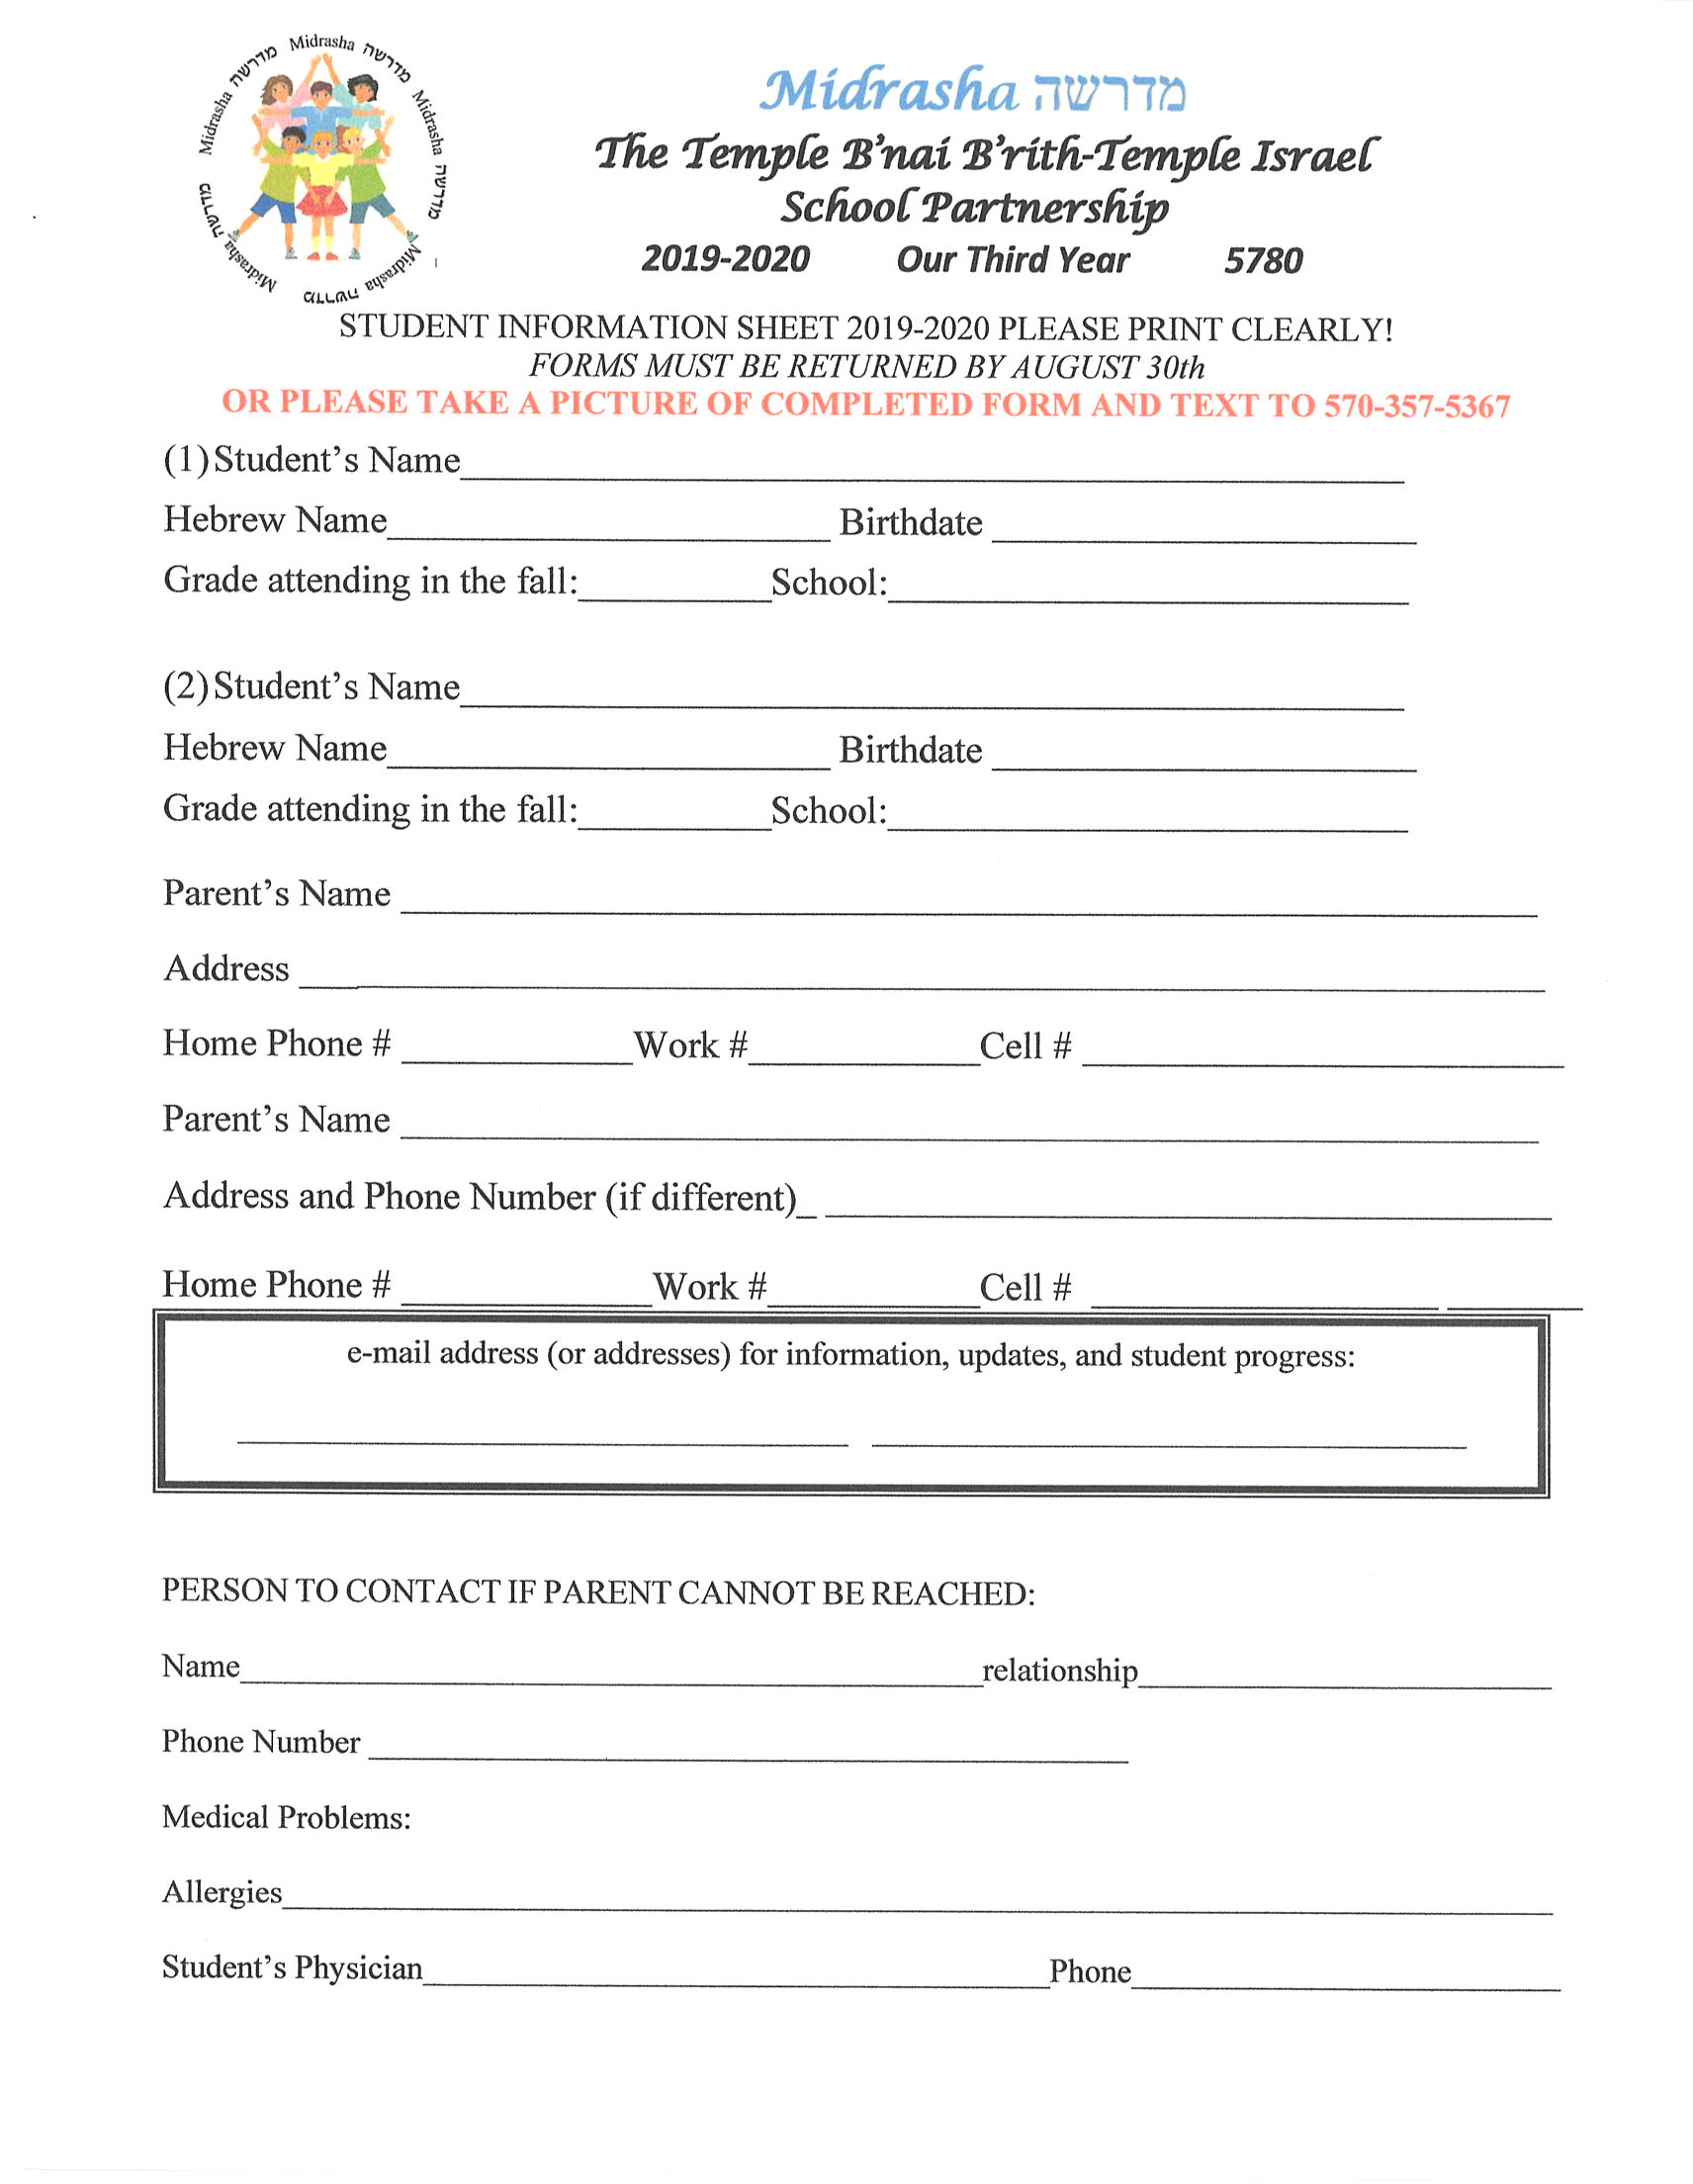 2019-2020 Student Registration Form.jpg